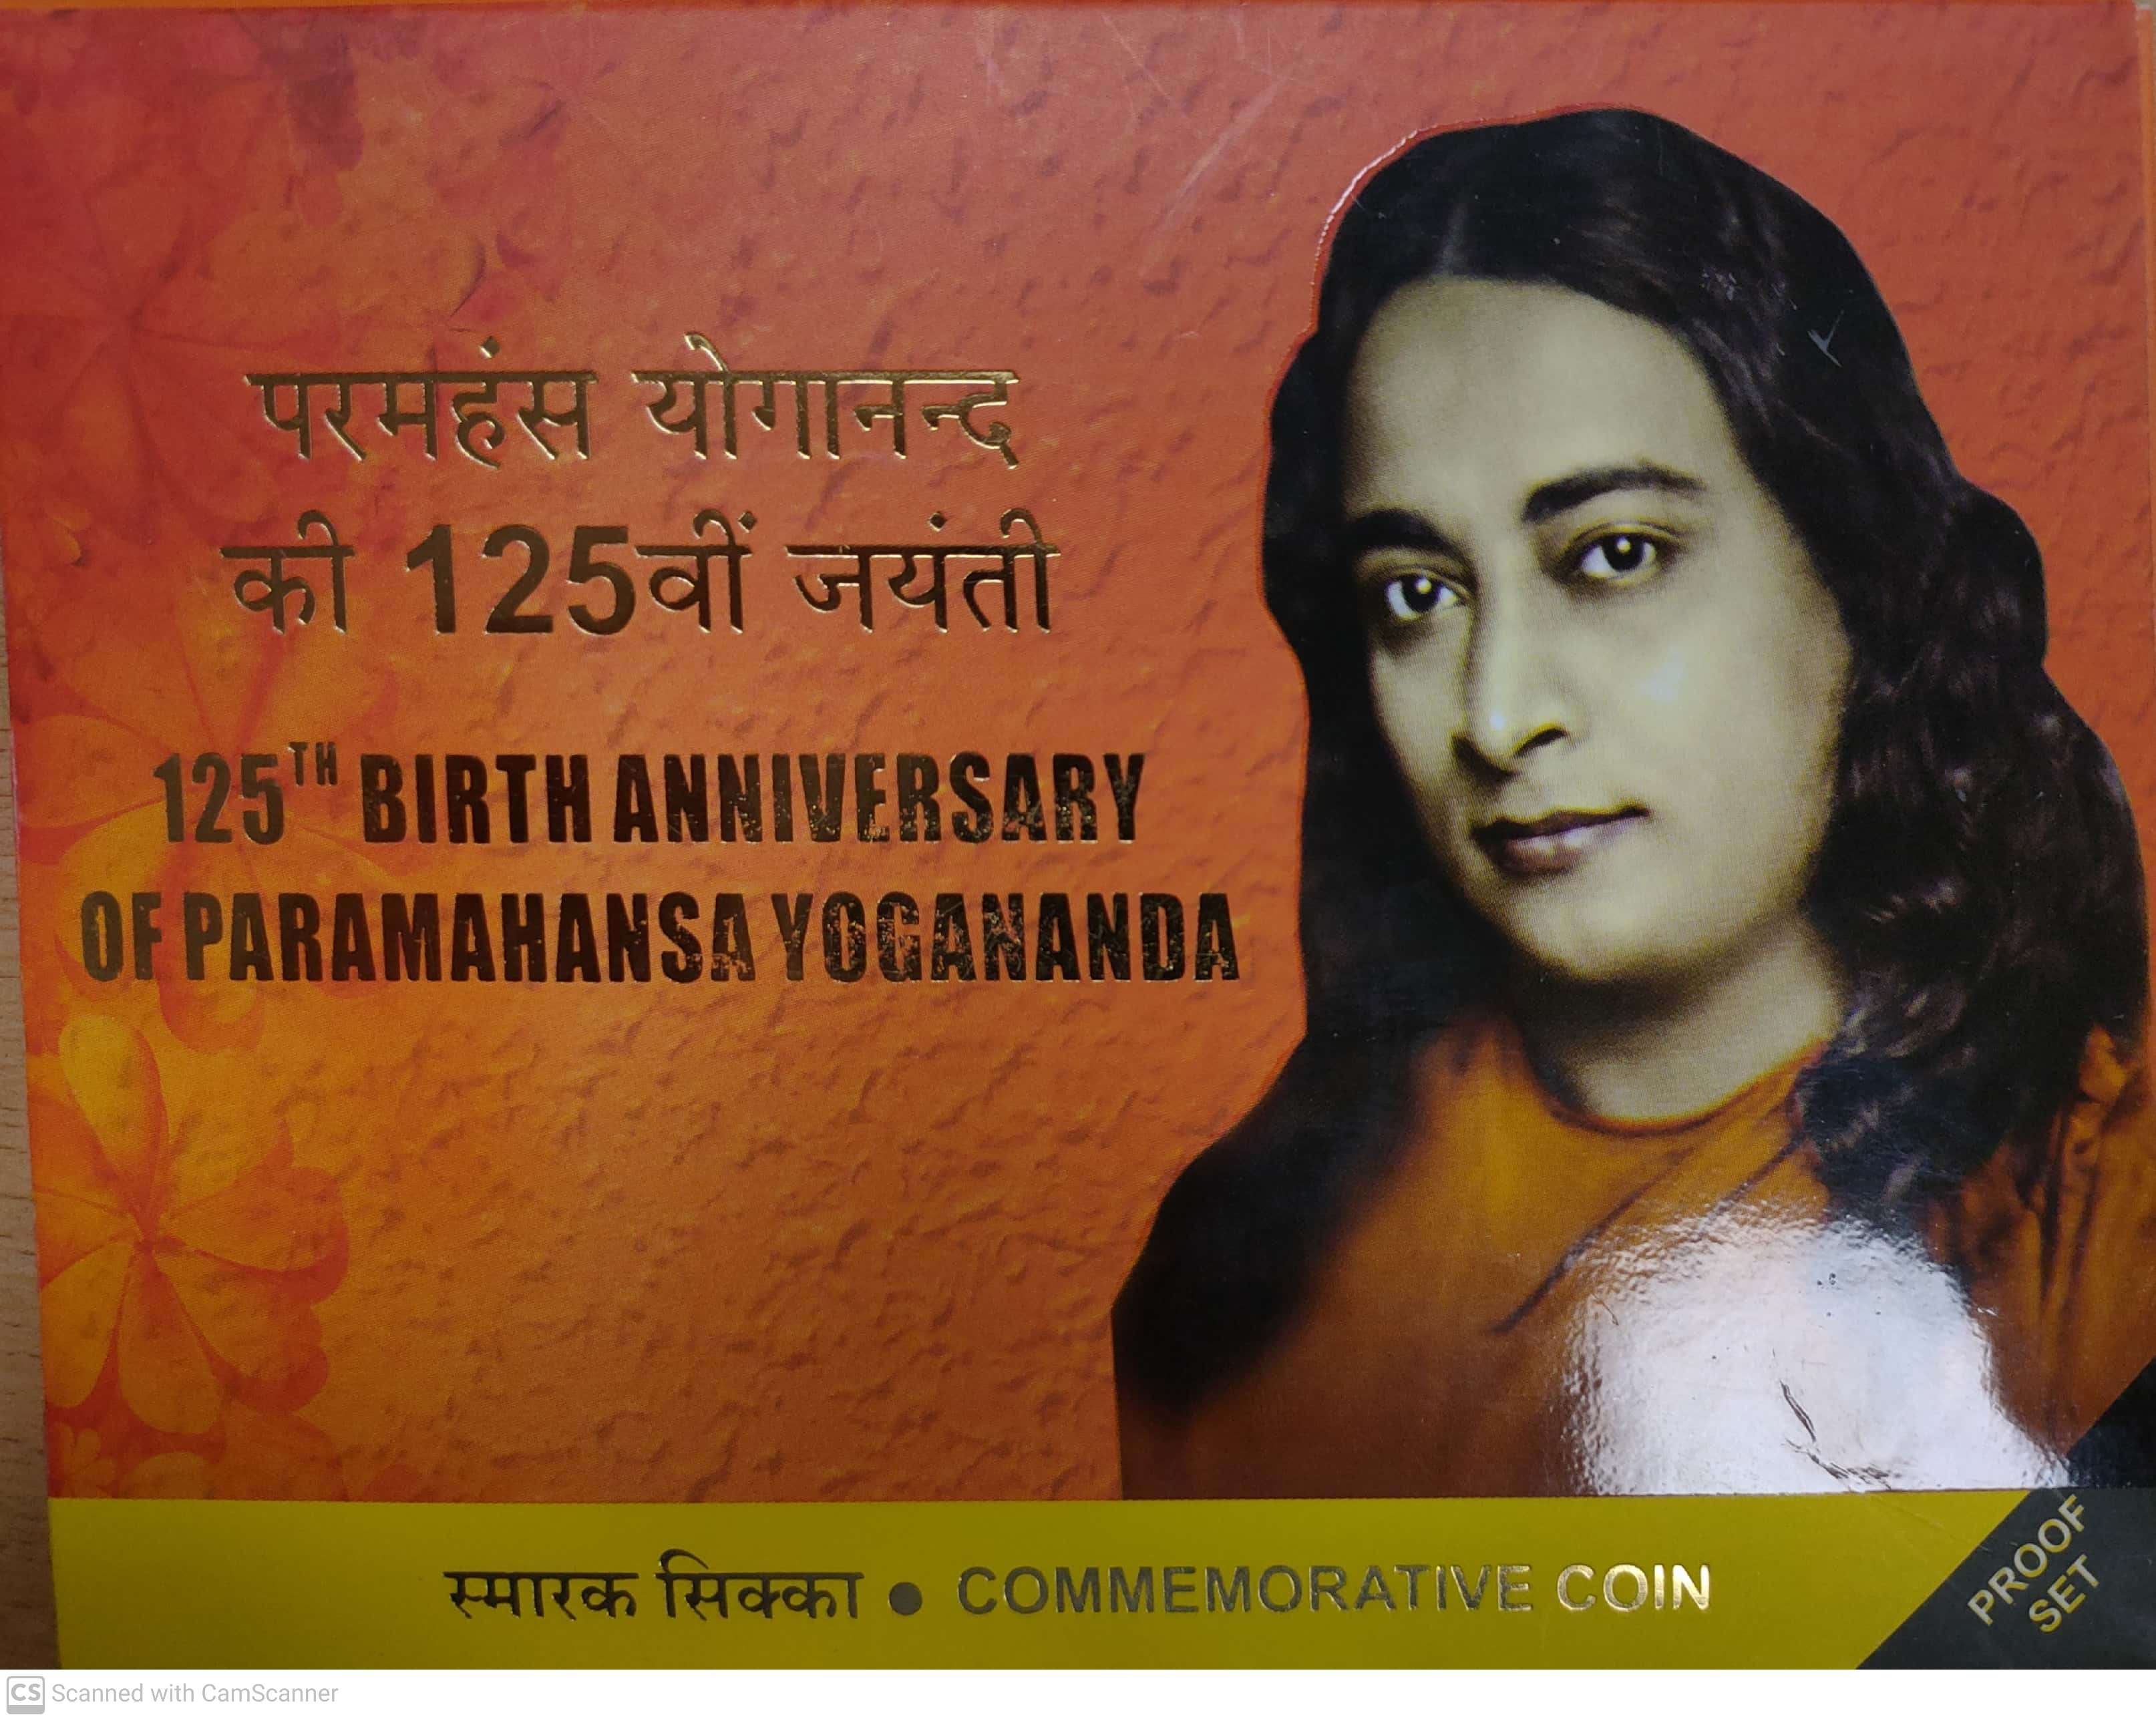 125th BIRTH ANNIVERSARY OF PARAMAHANSA YOGANANDA